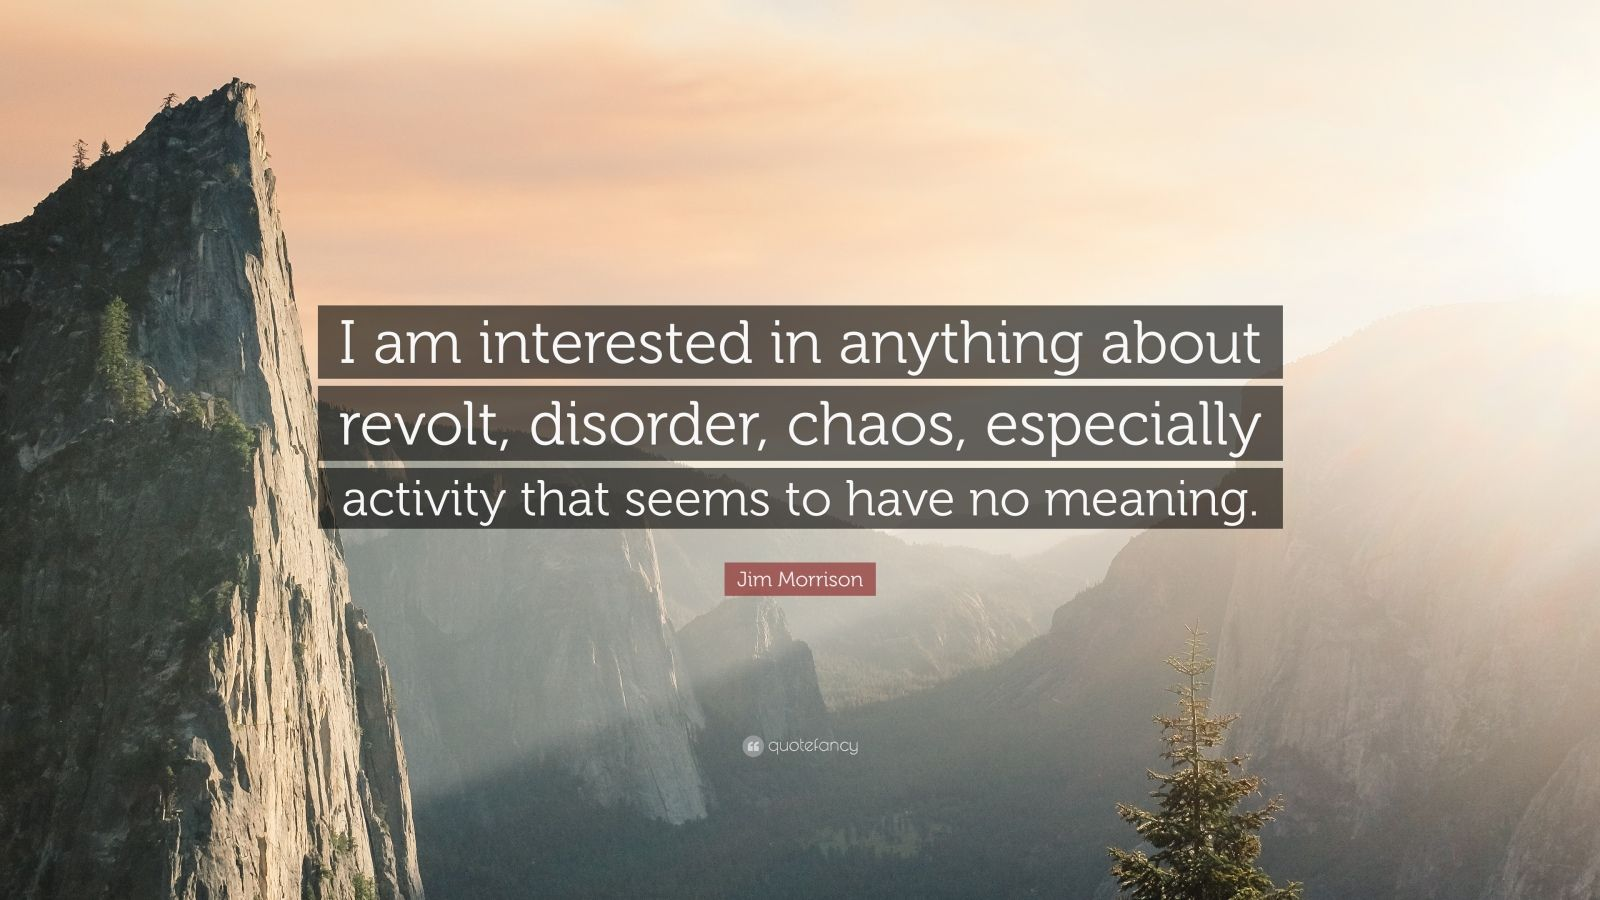 """Jim Morrison Quote: """"I am interested in anything about revolt, disorder, chaos, especially activity that seems to have no meaning."""""""